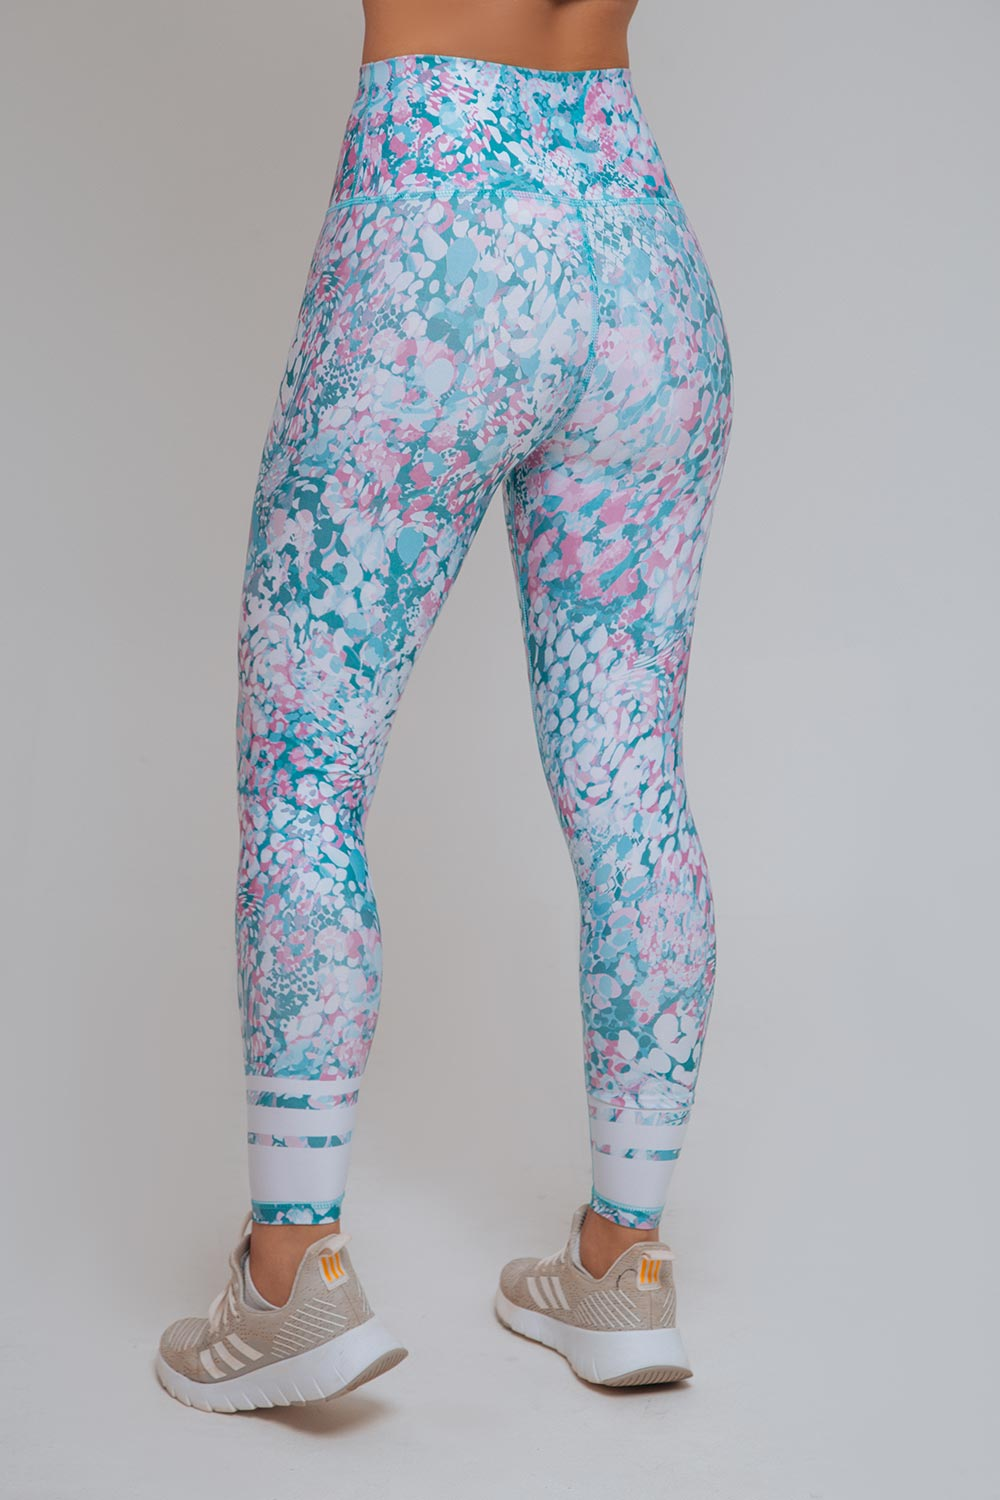 WILD WANDER HIGH RISE LEGGING